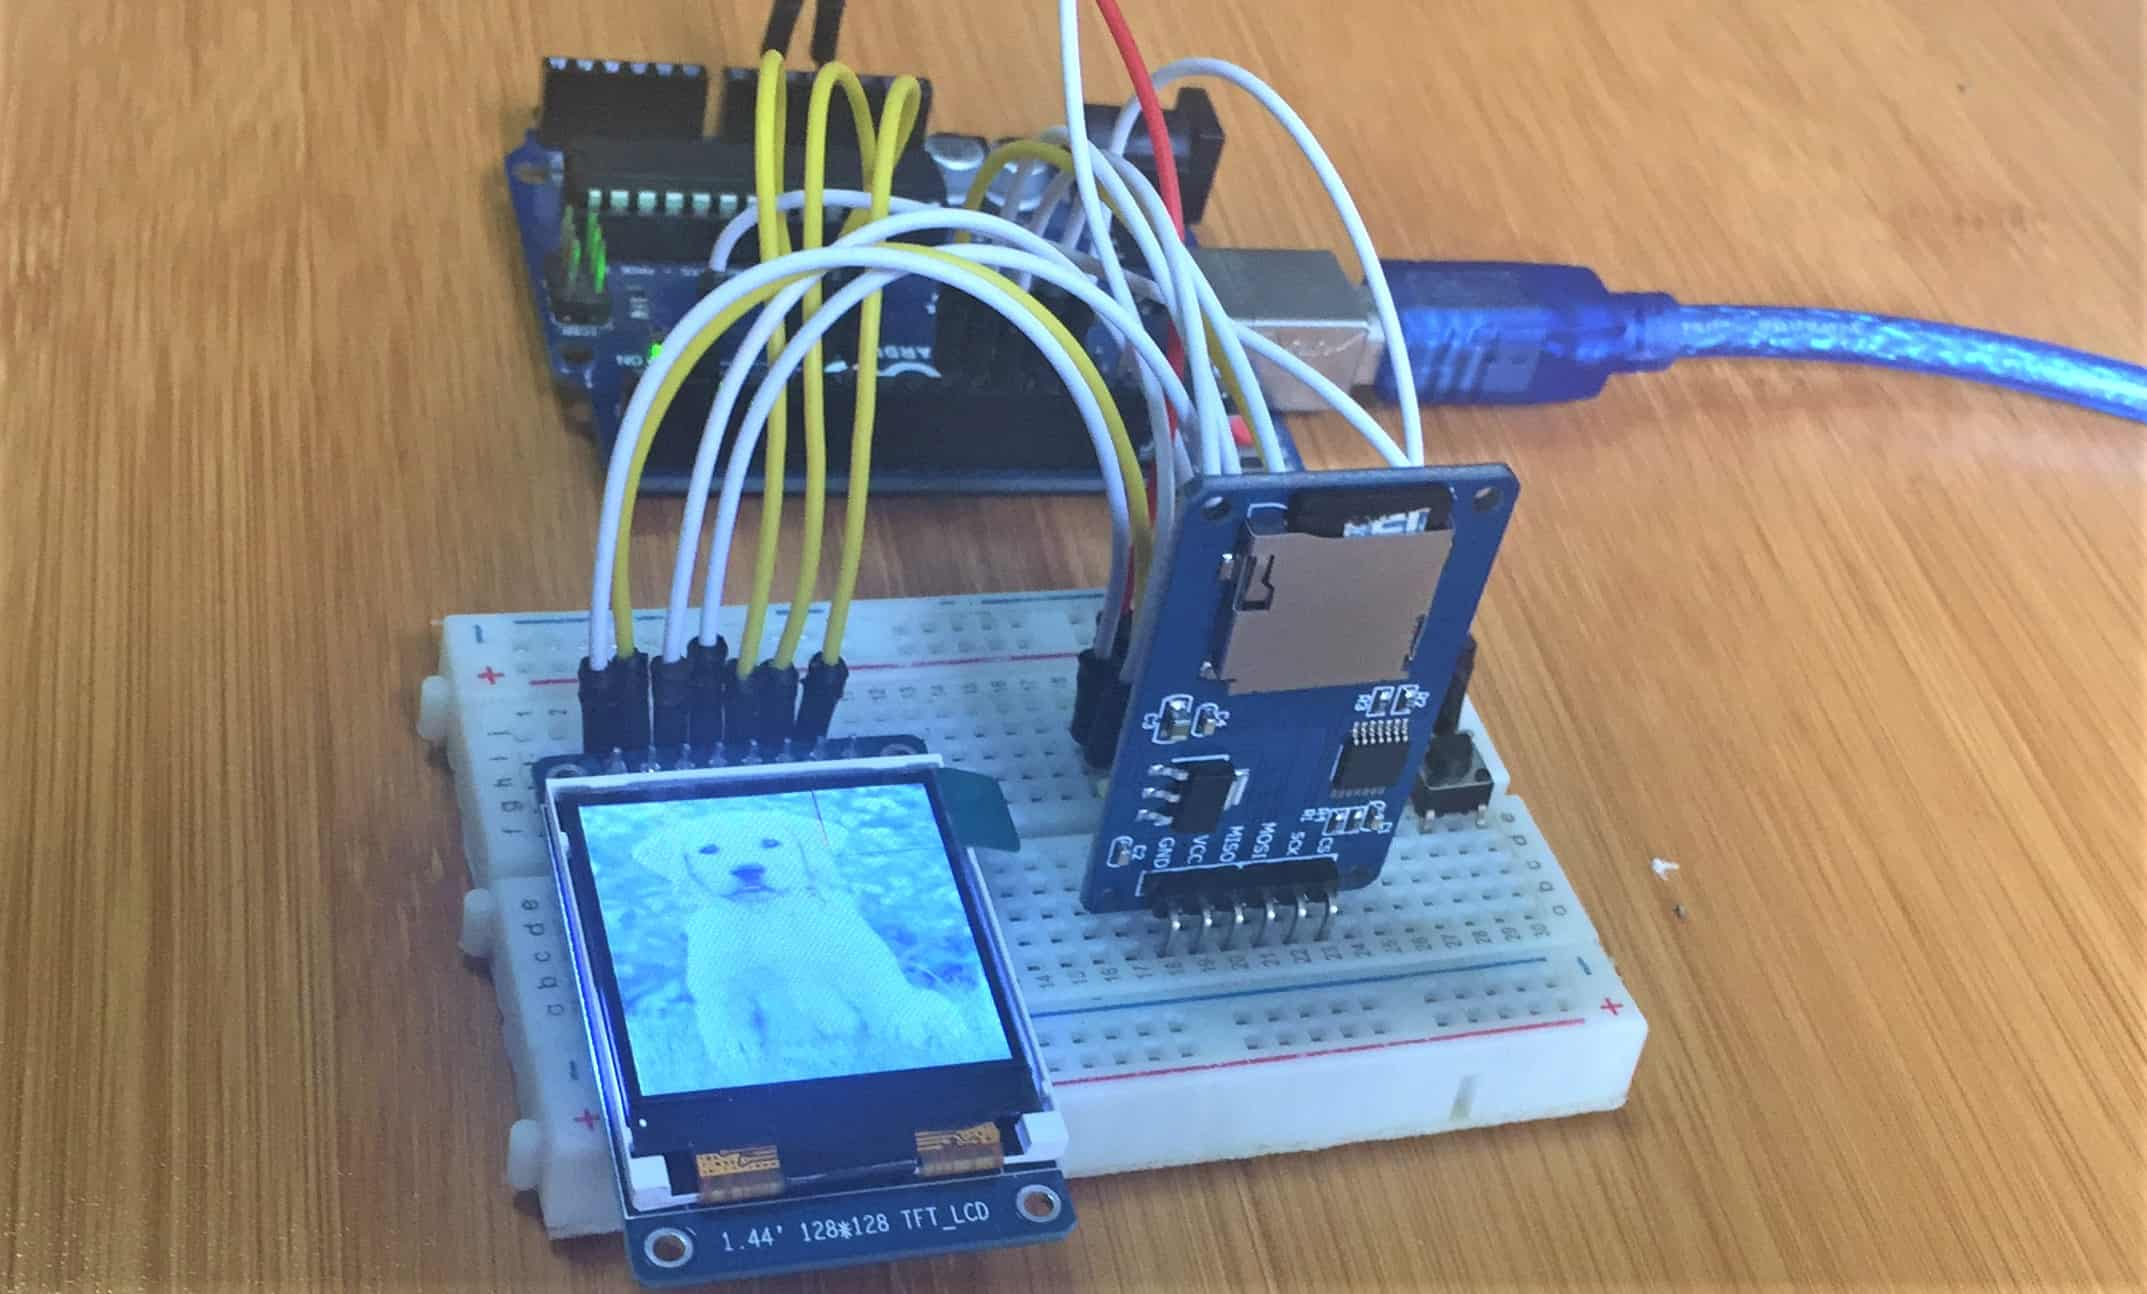 Micro SD card Module with Arduino and TFT display.